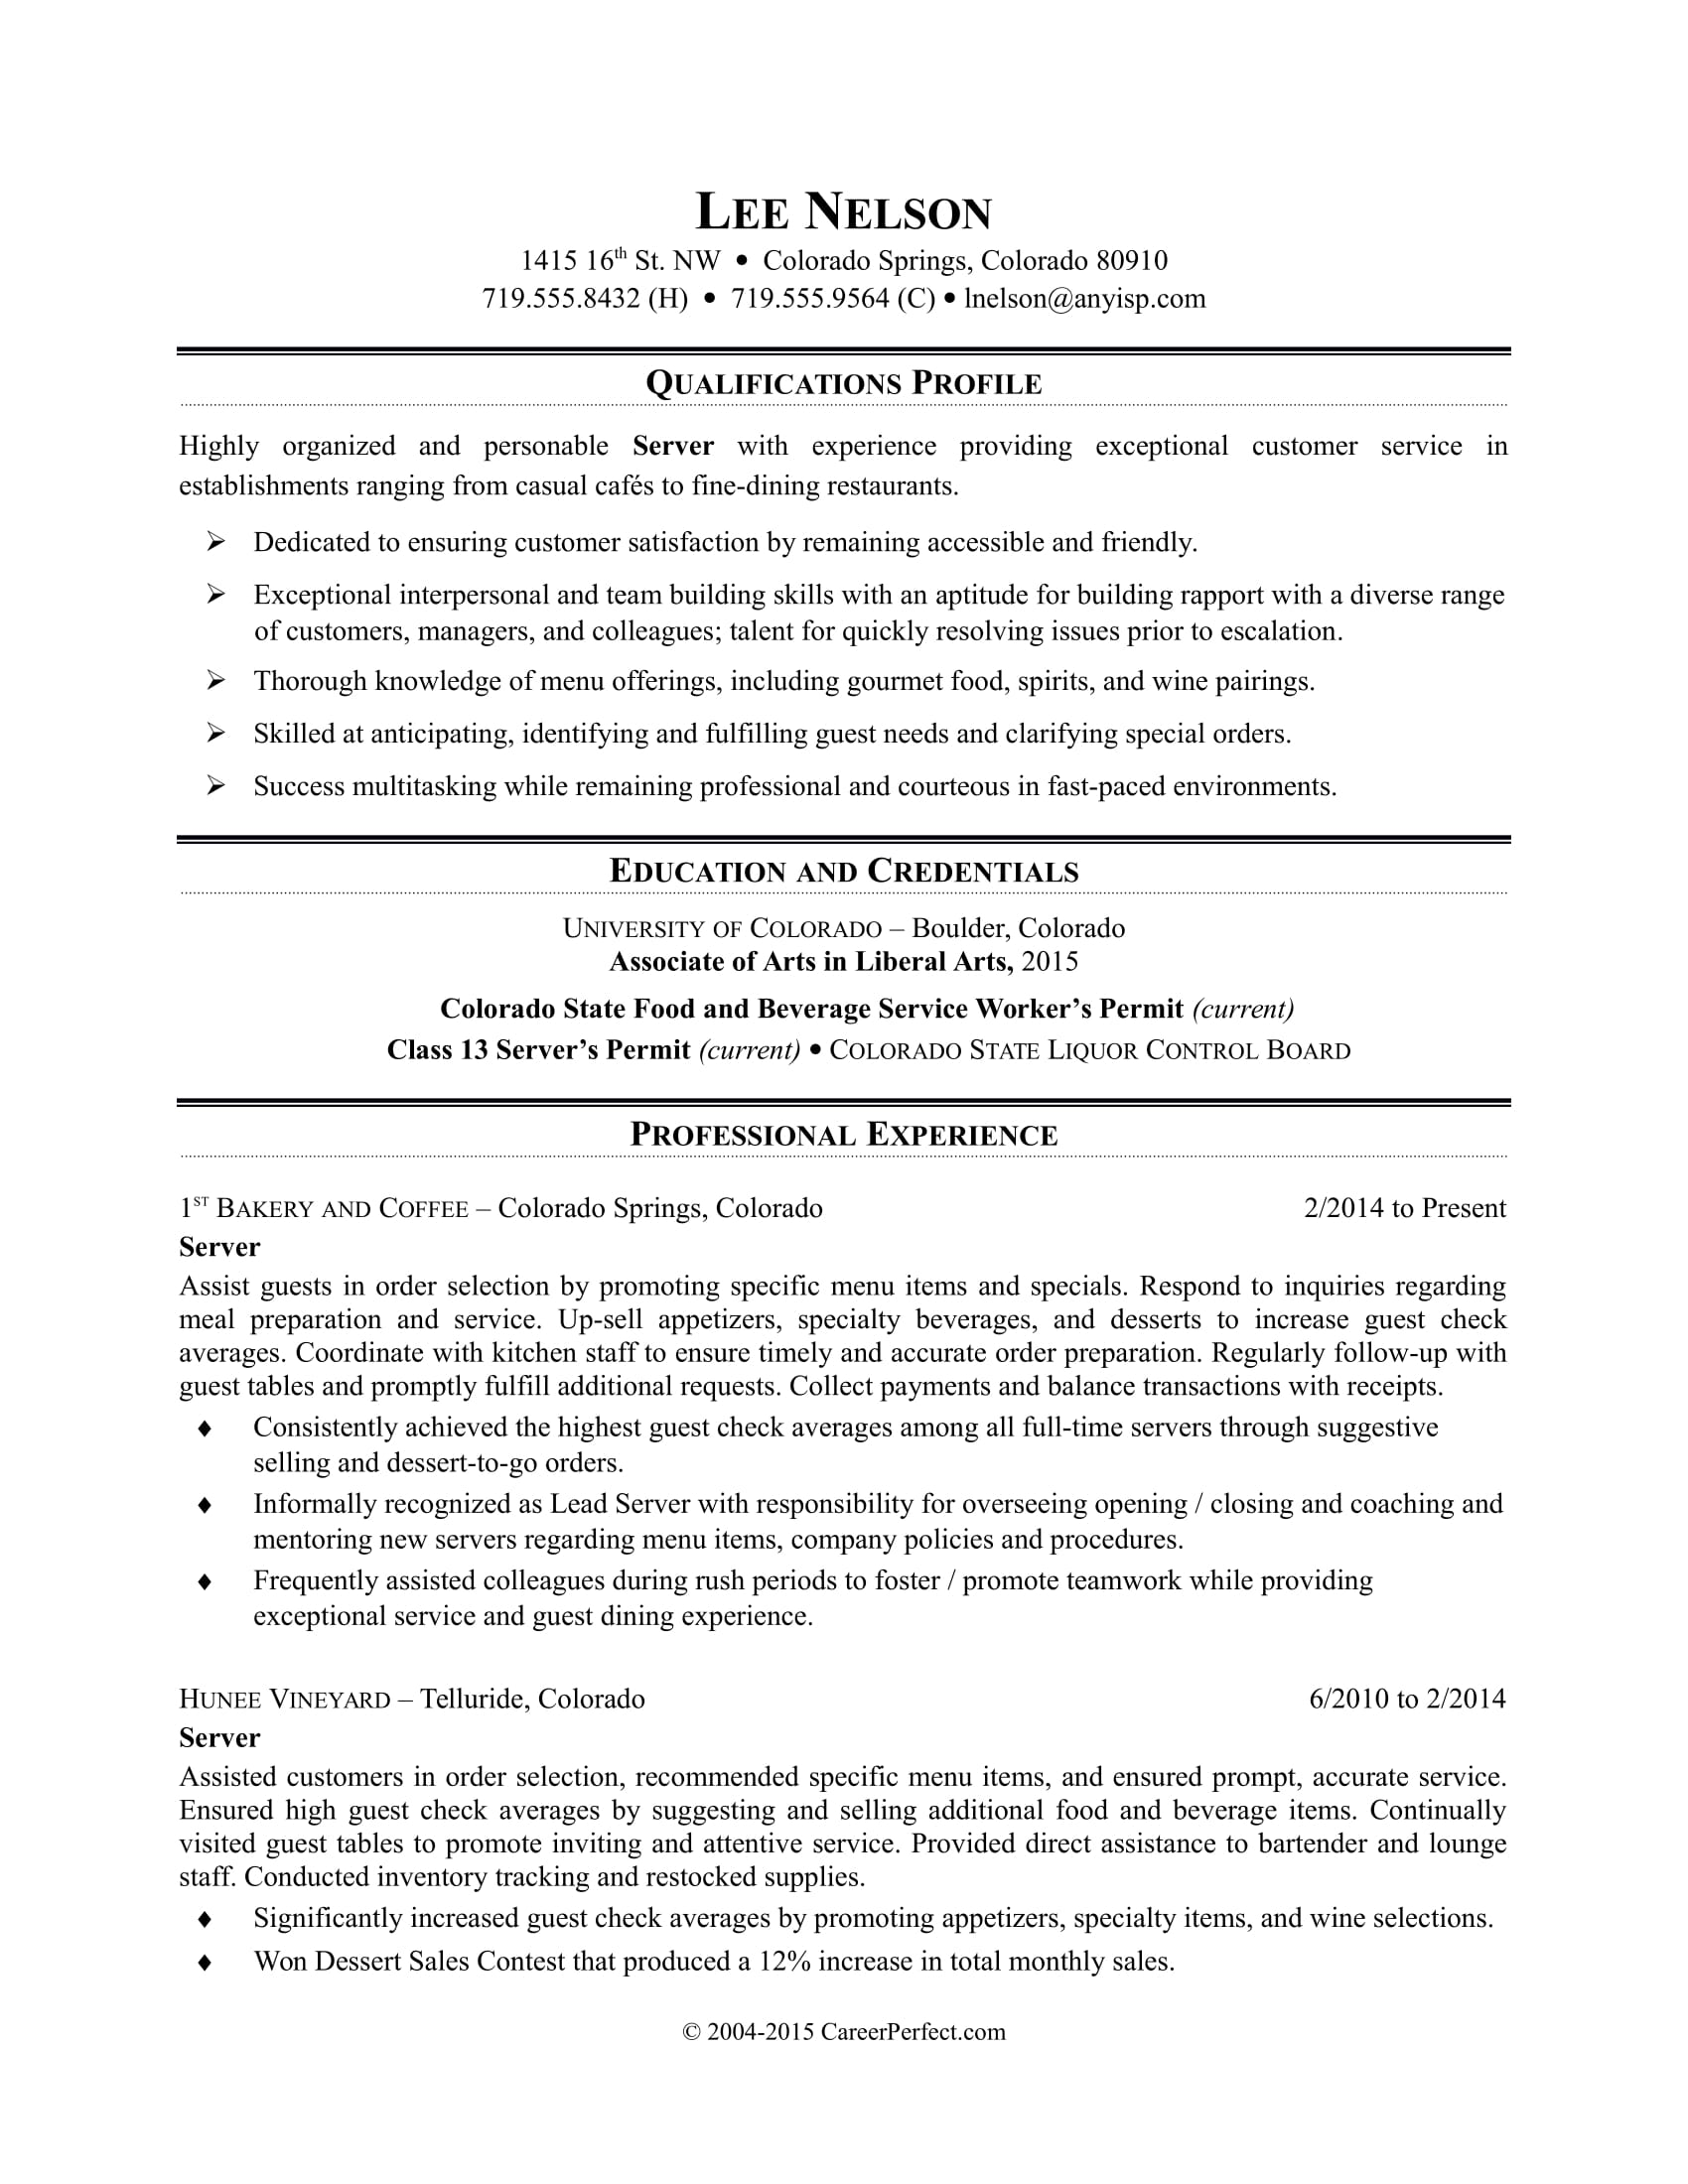 resume examples restaurant jobs